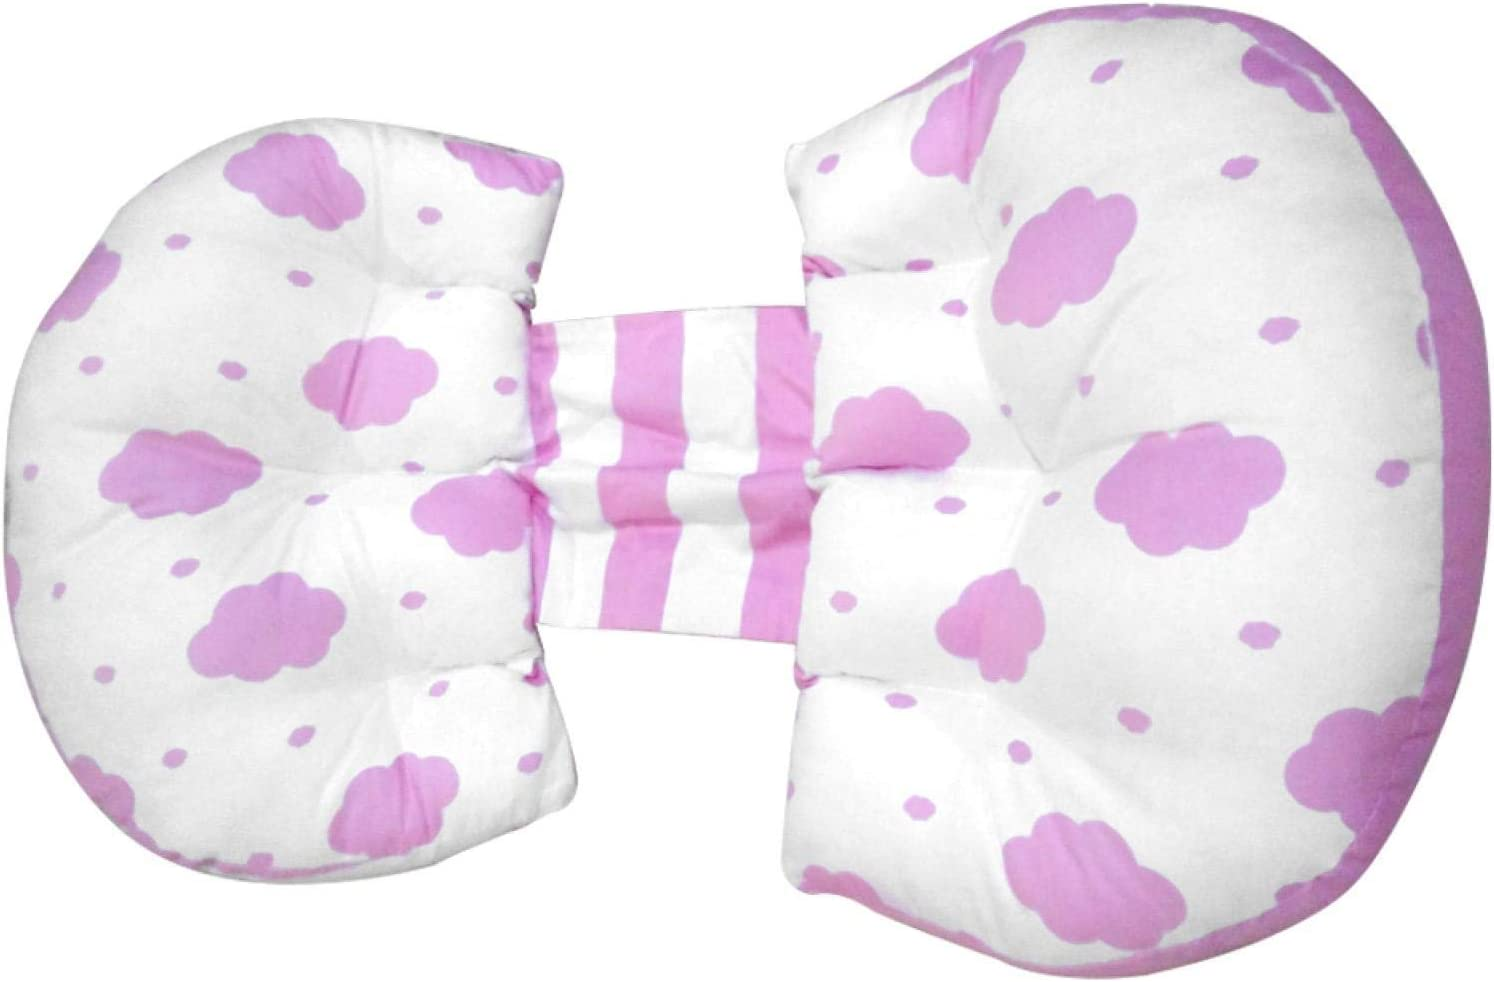 U Shape Double Wedge Support Waist Side Sleeping Pillow Bump and Back Support Cushion Best Pregnant Mom Gift MOVKZACV Side Sleeper Pregnancy Pillow